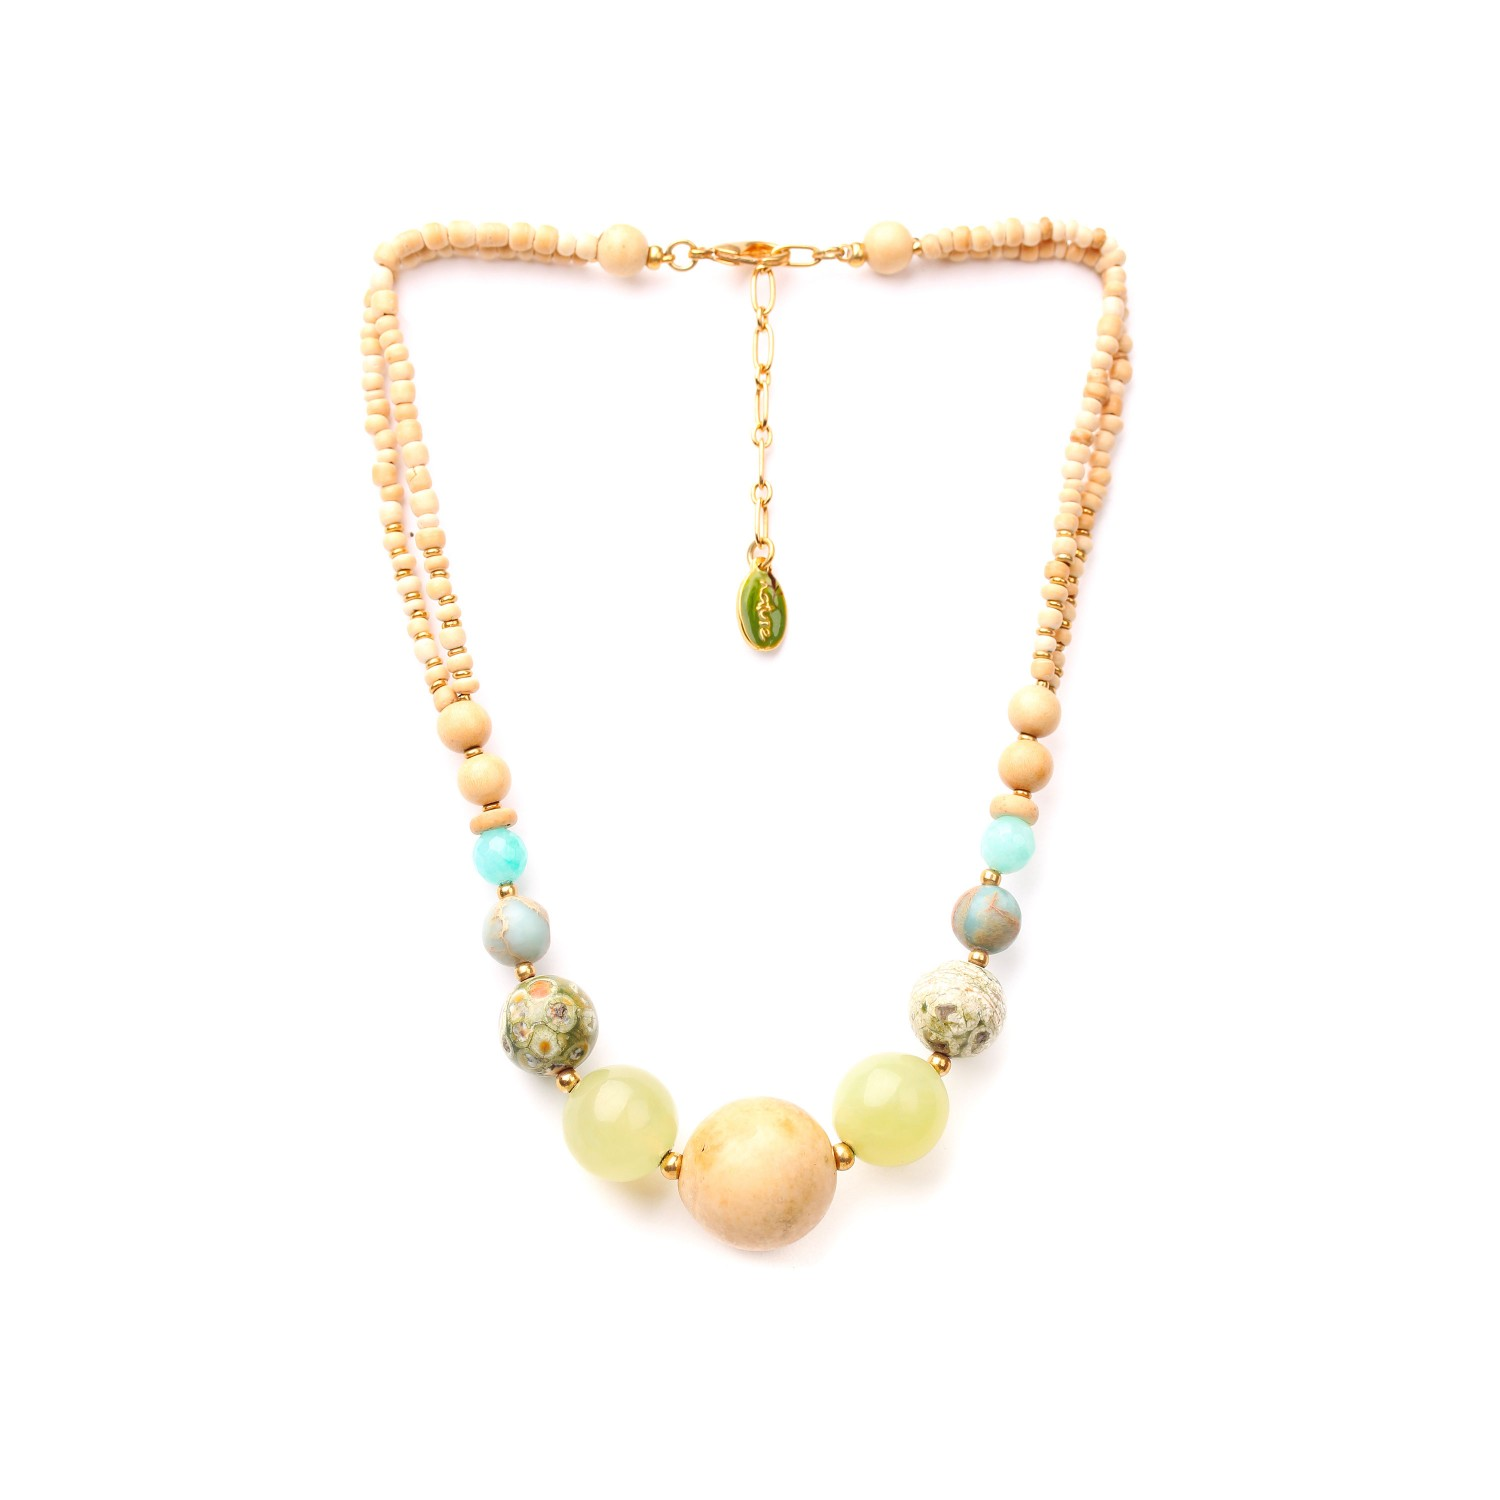 DANUBE graduated beads necklace